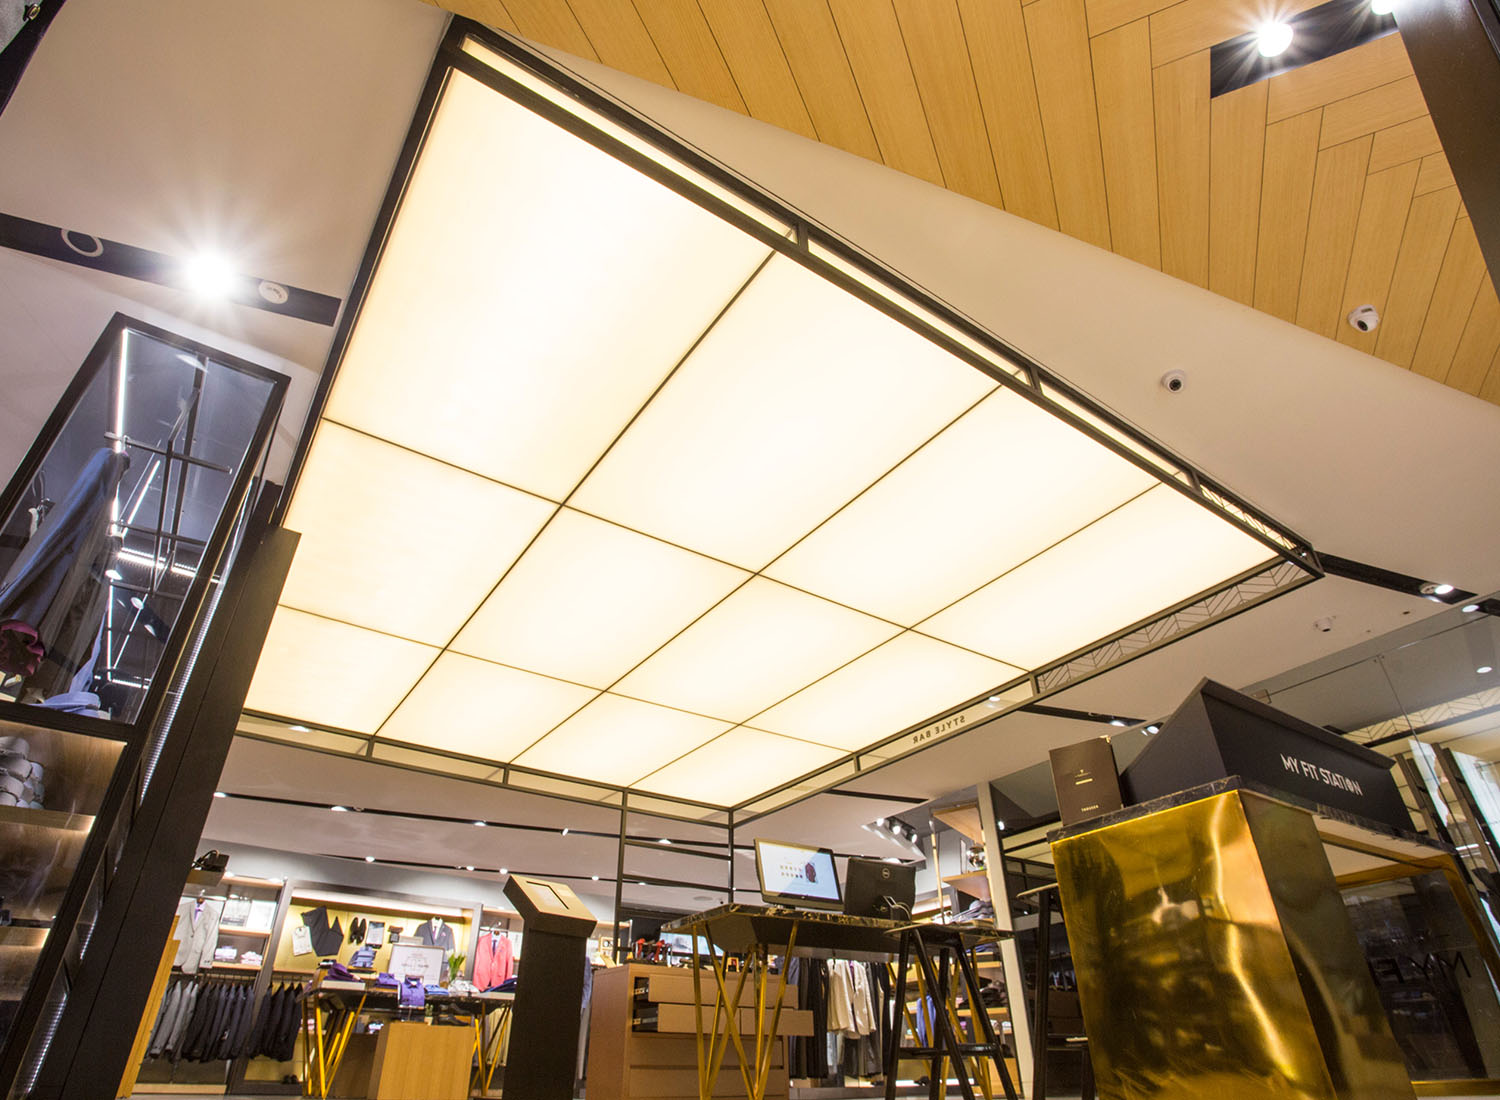 Van Heusen - Stretch Ceiling  Translucent with Backlighting in Showroom - Showroom